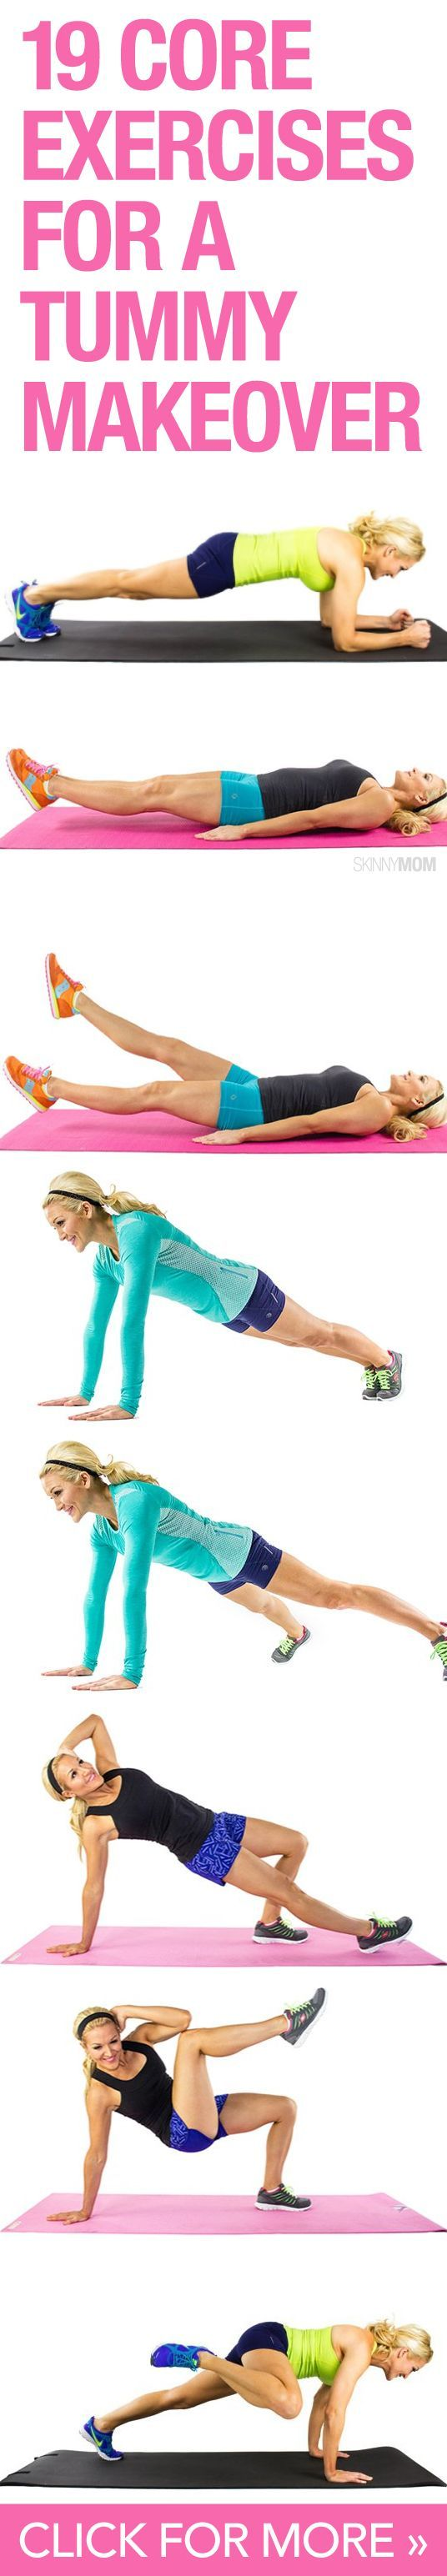 Turn that tummy into rock-hard abs with this workout!